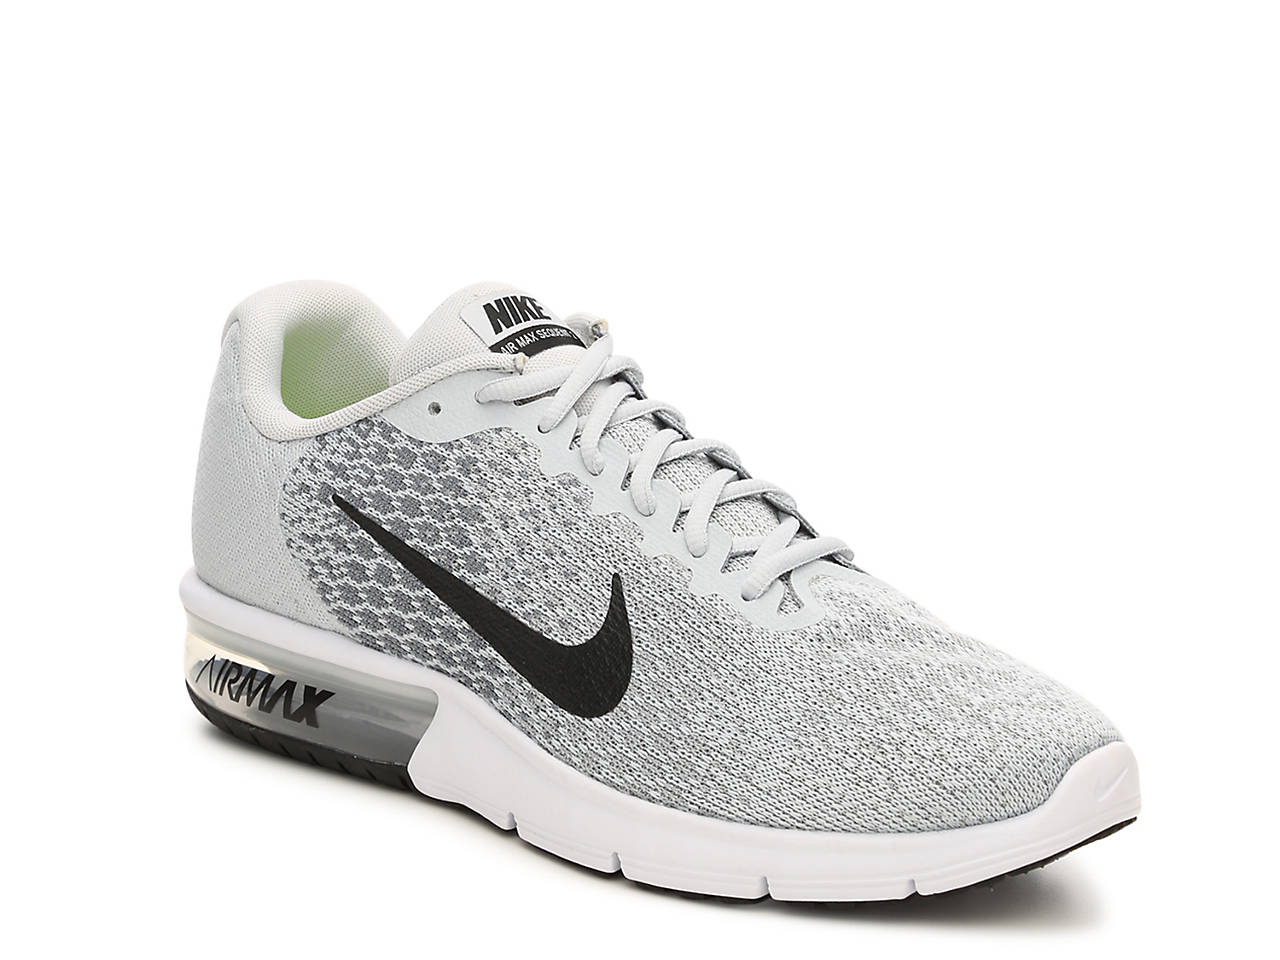 78c671f7b7 Nike Air Max Sequent Performance Running Shoe - Men's Men's Shoes | DSW